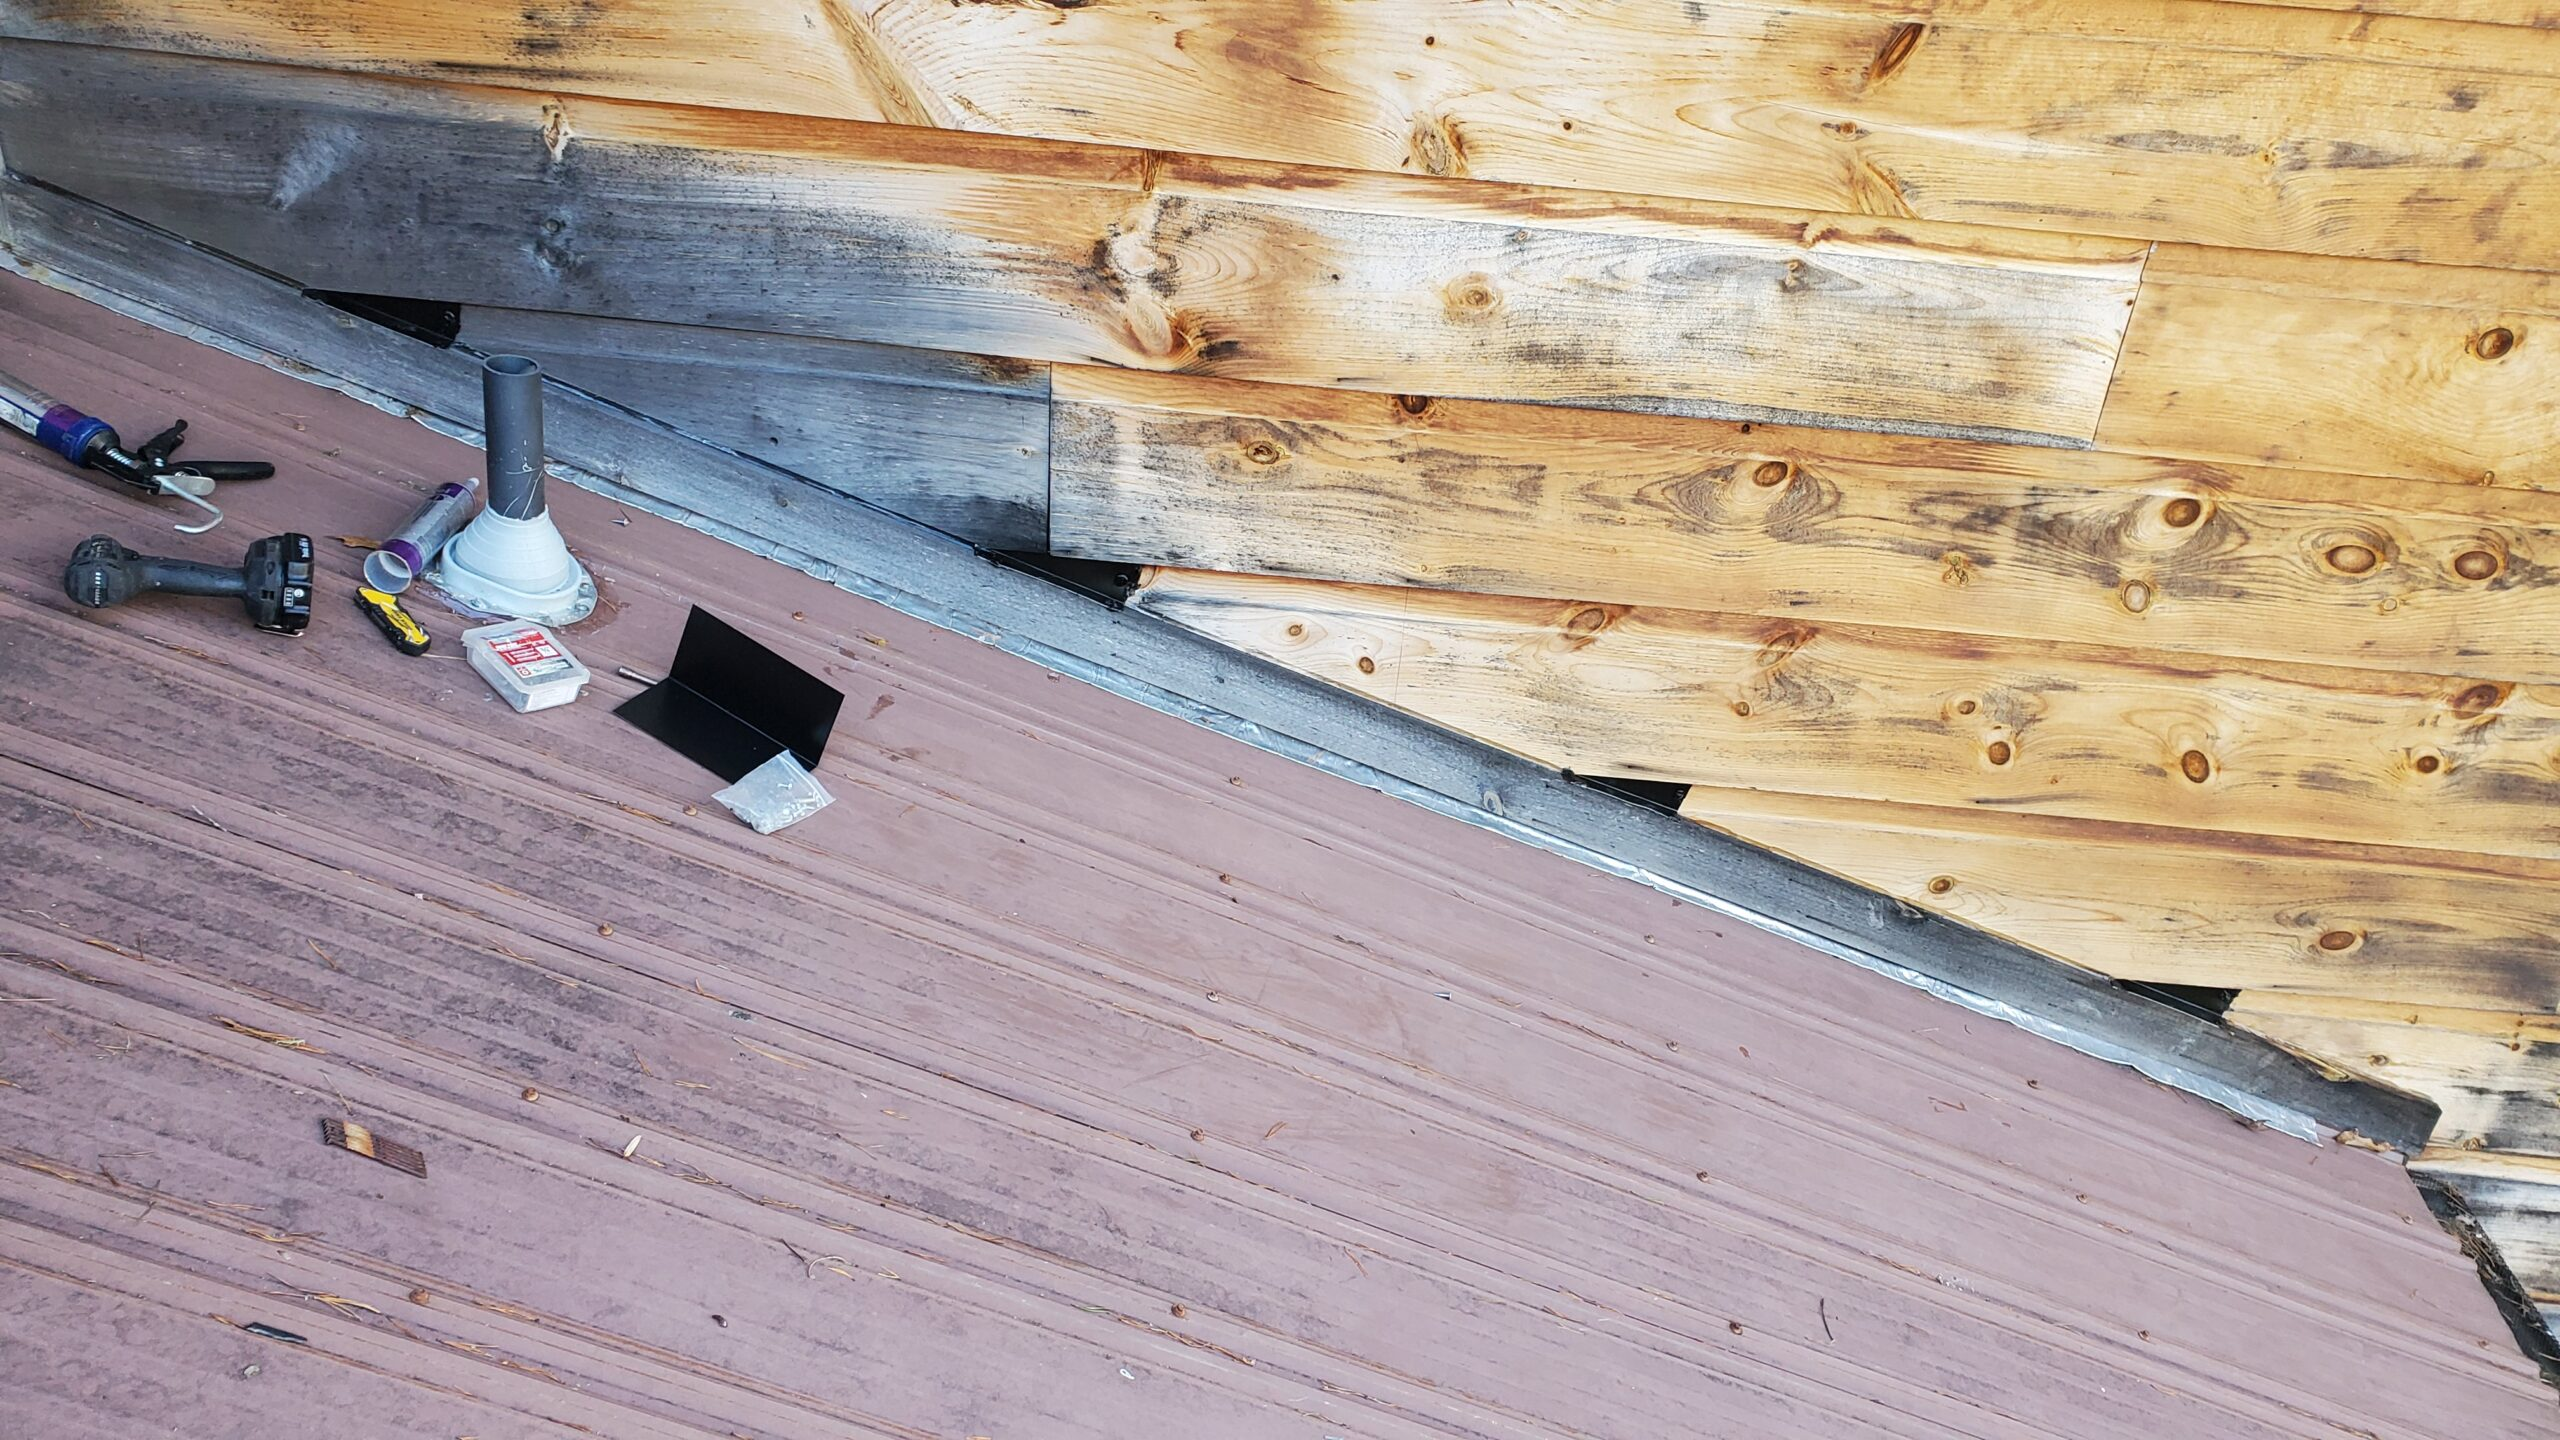 This is a picture of a wall with wooden siding that has triangular pieces of metal flashing between each piece of siding. Closing the gaps between each siding piece